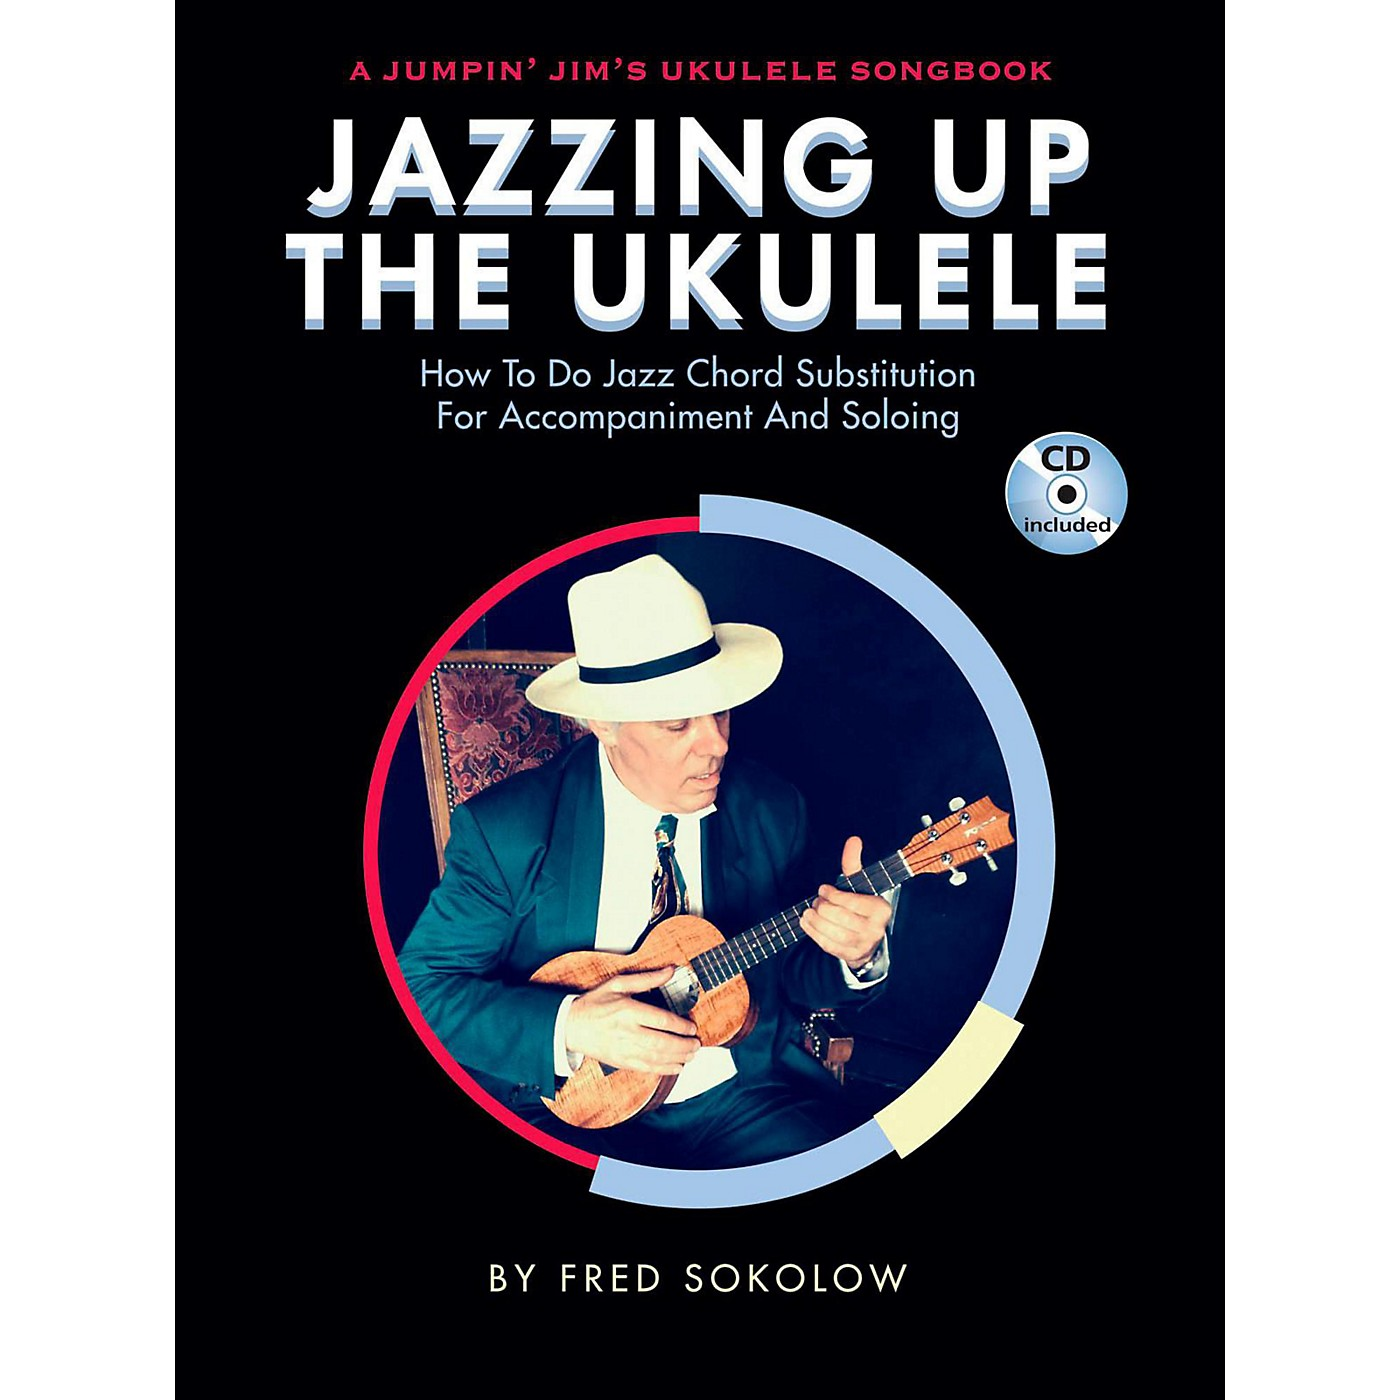 Hal Leonard Jazzing Up The Ukulele  How to Do Jazz Chord Substitution for Accompaniment and Soloing Book/CD thumbnail